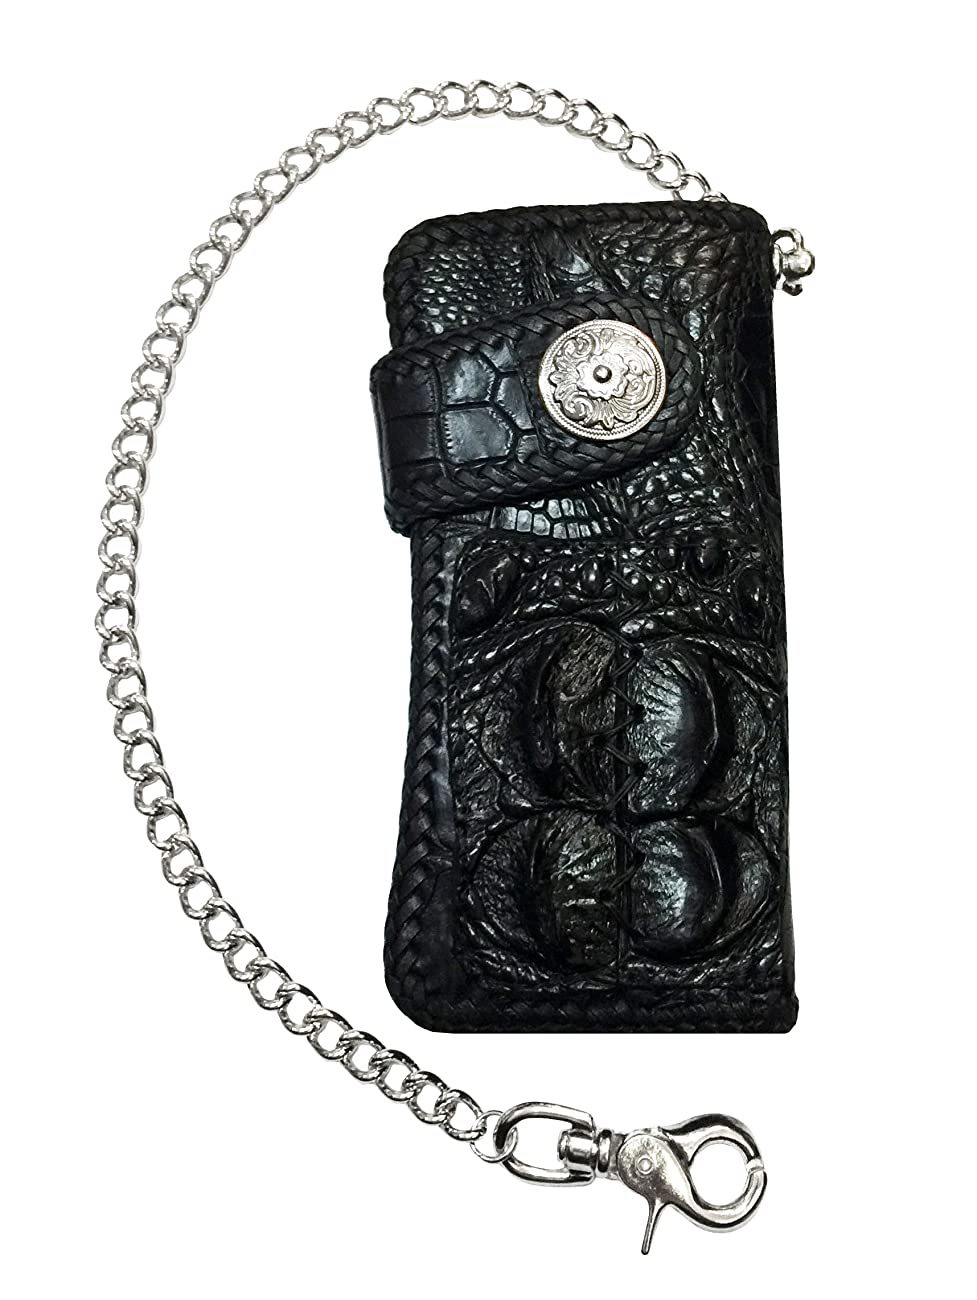 D'SHARK Luxury Biker Crocodile Skin Leather Bi-fold Snap Wallet (Black) 0